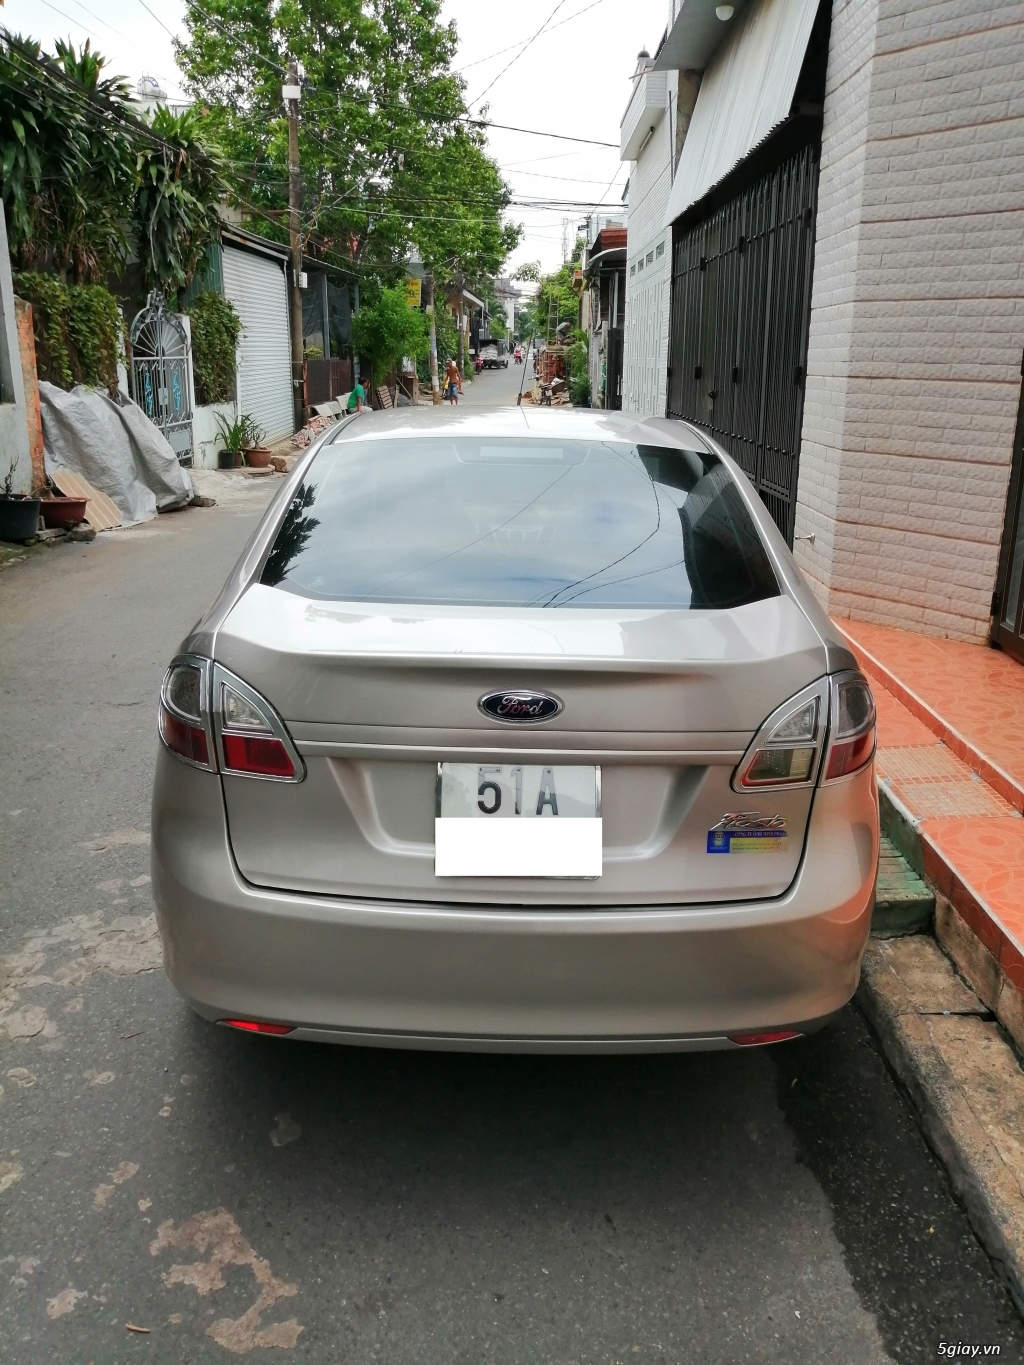 Xe	Ford Fiesta	1.6 AT	2013	-GHINA - 2